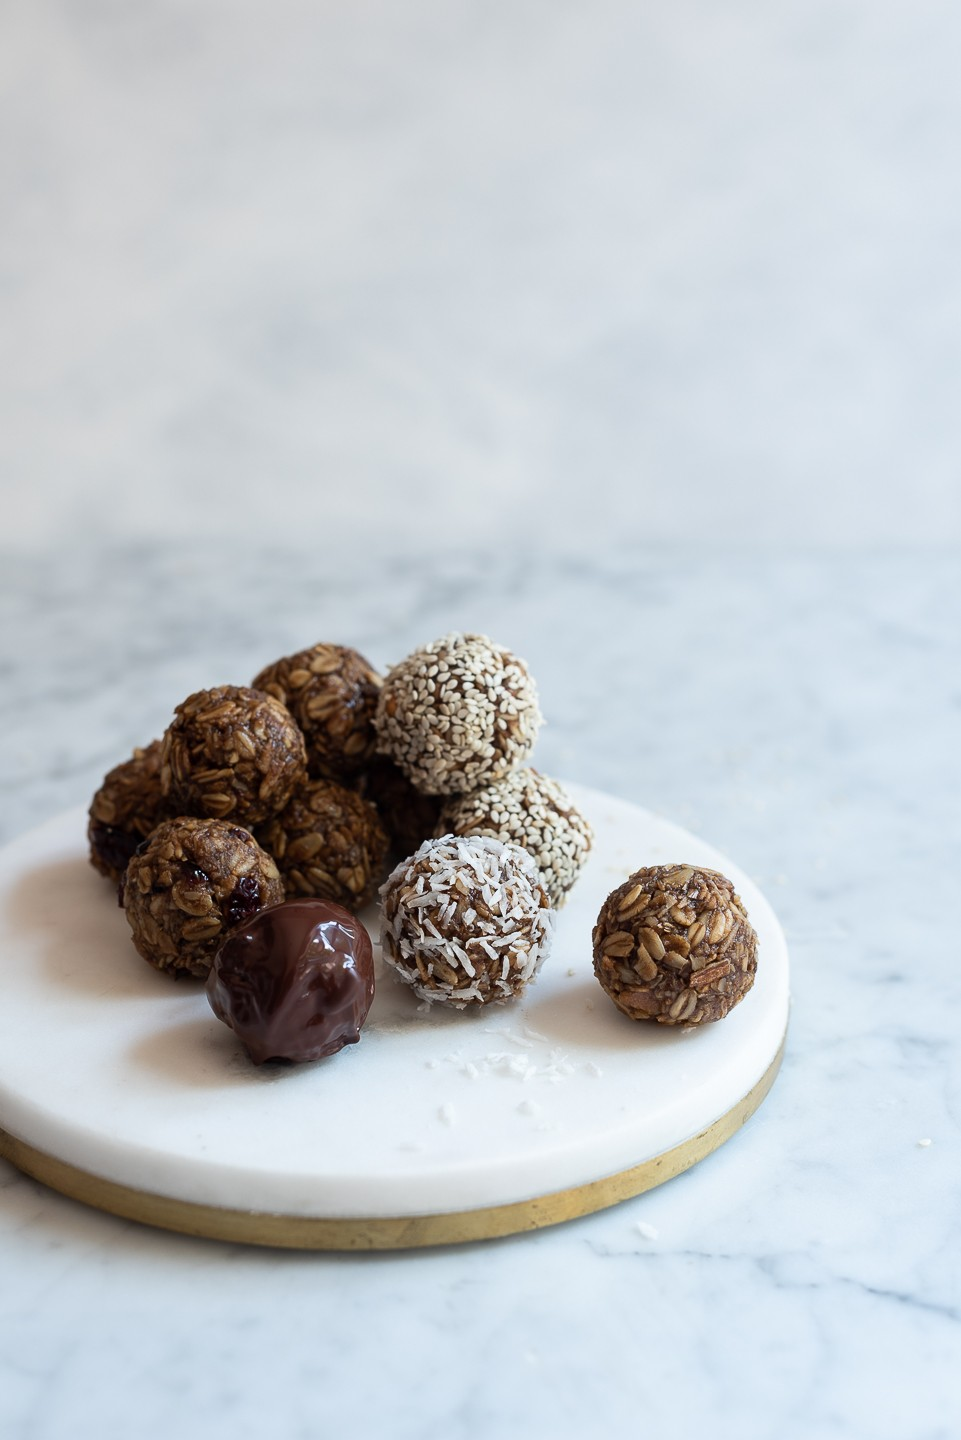 Almond butter and oat snack balls | Bibbyskitchen @ 36 |